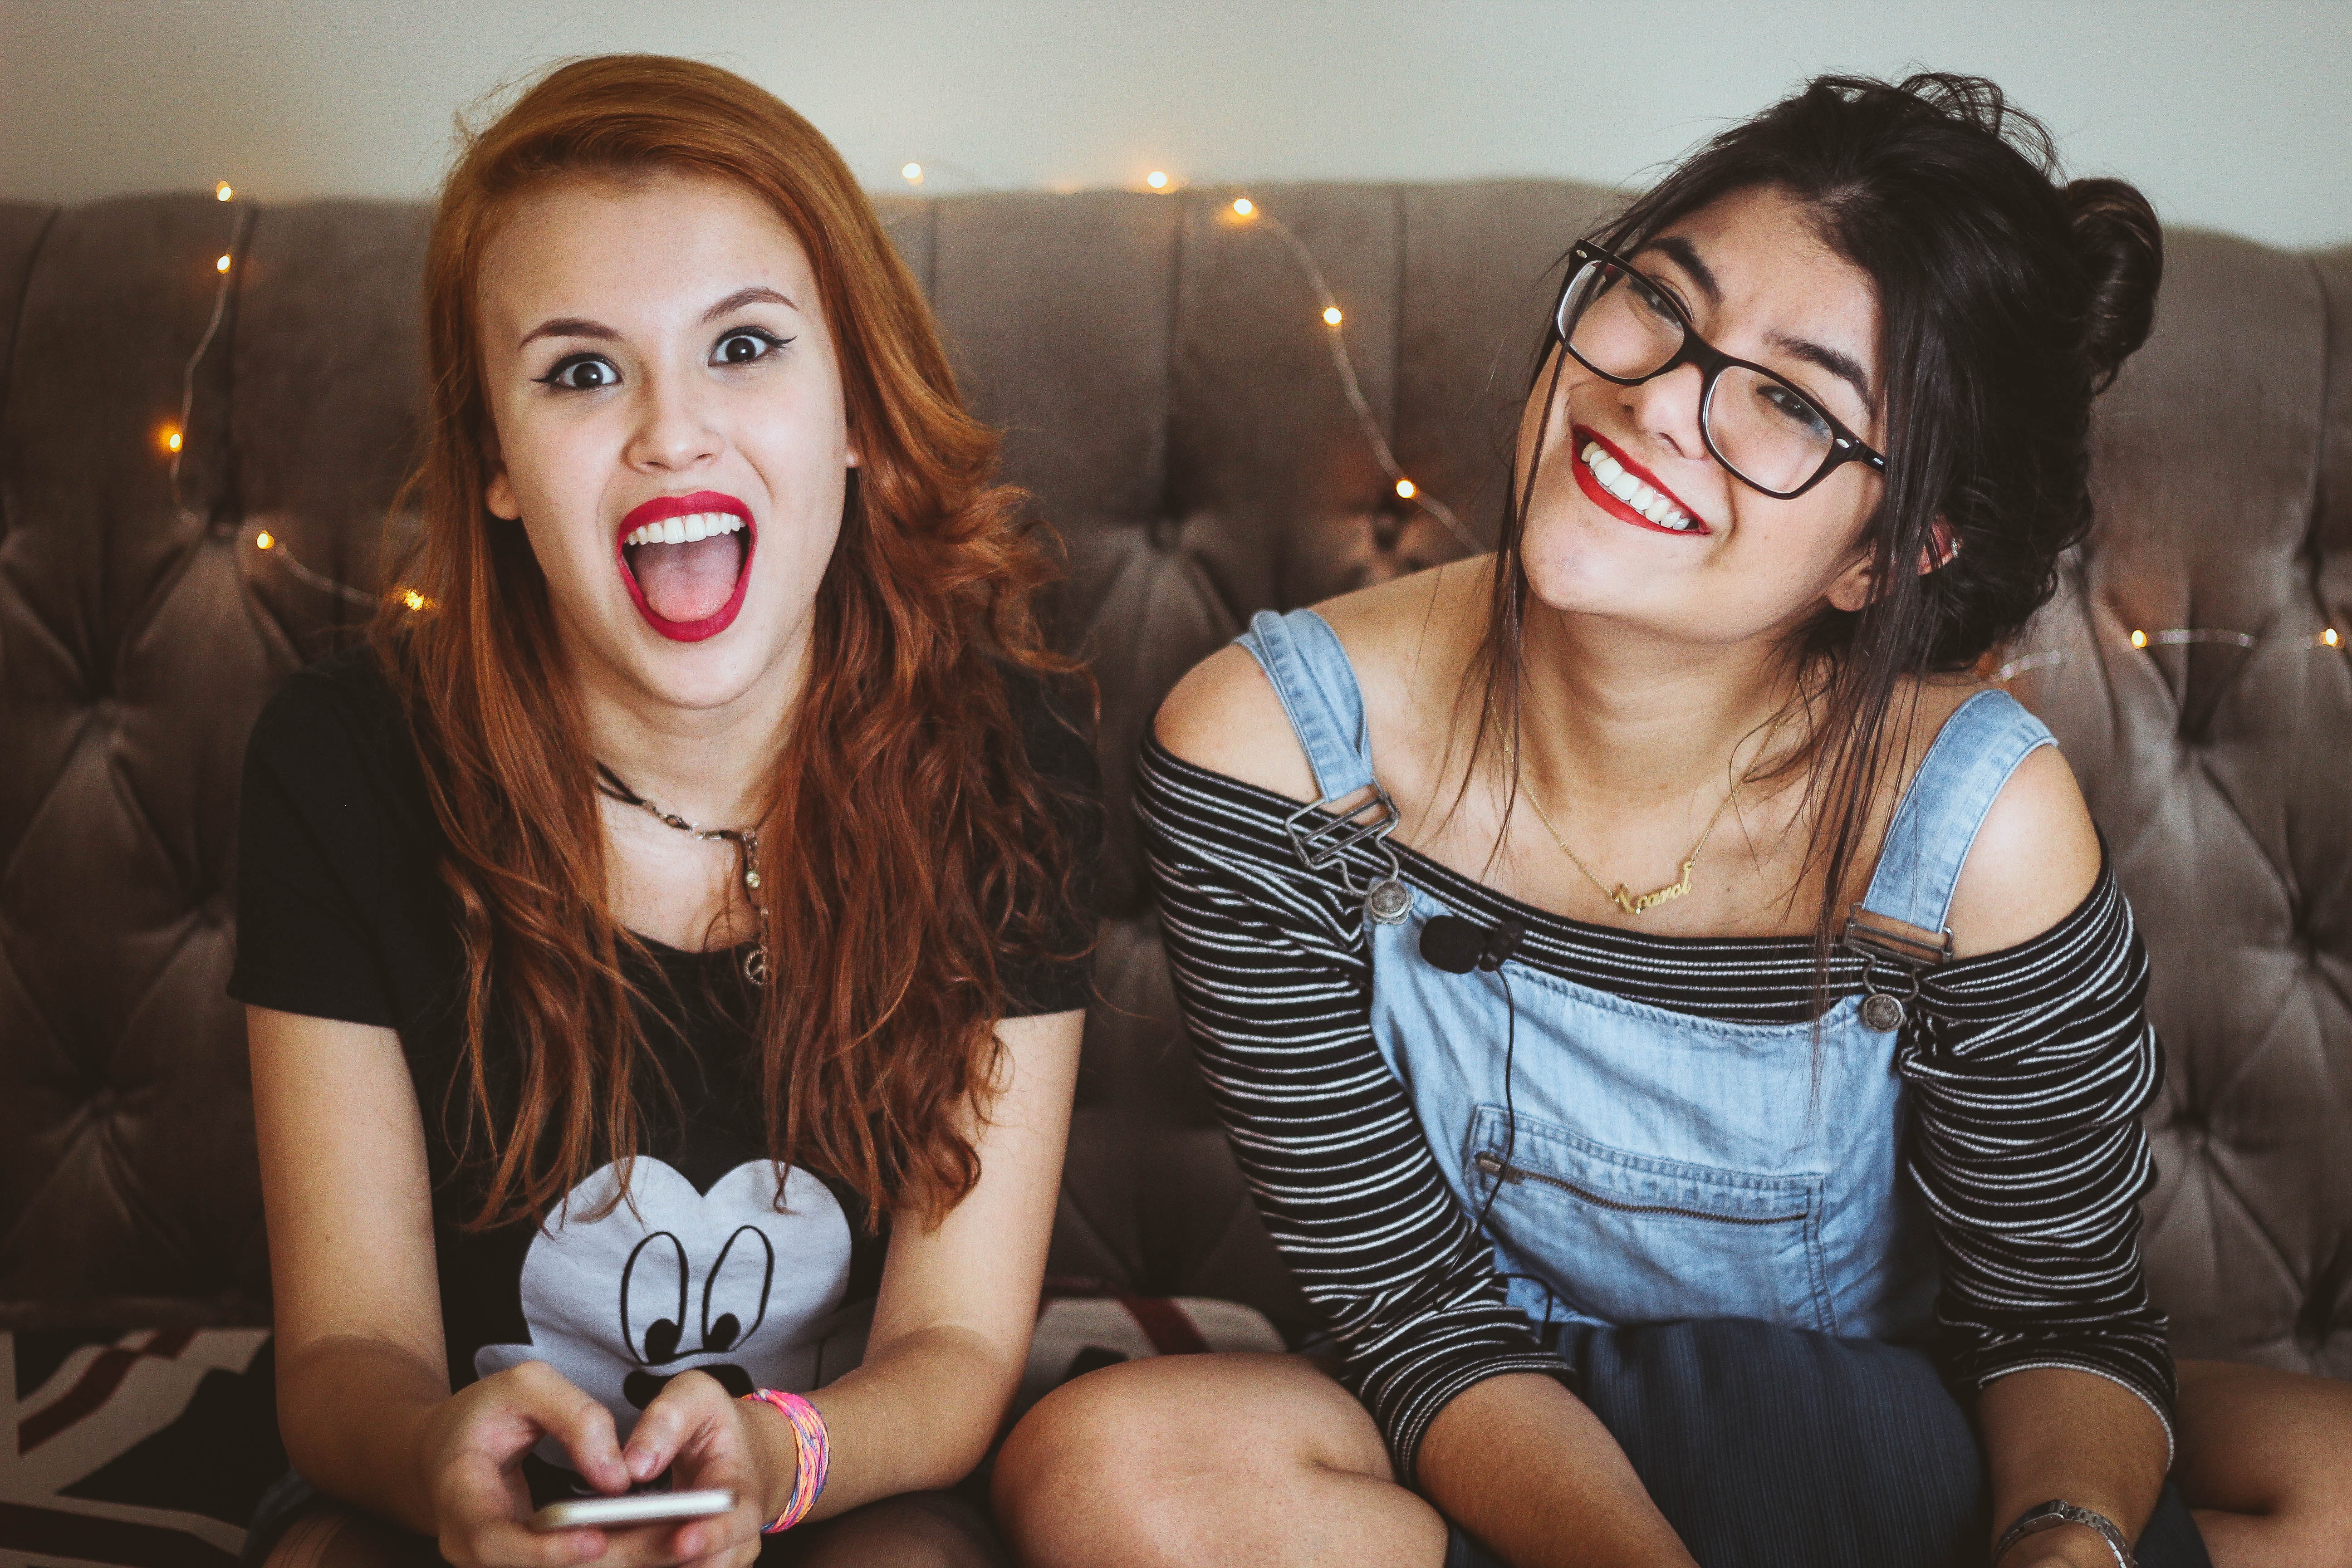 2 teenage girls sitting on couch with their smartphones